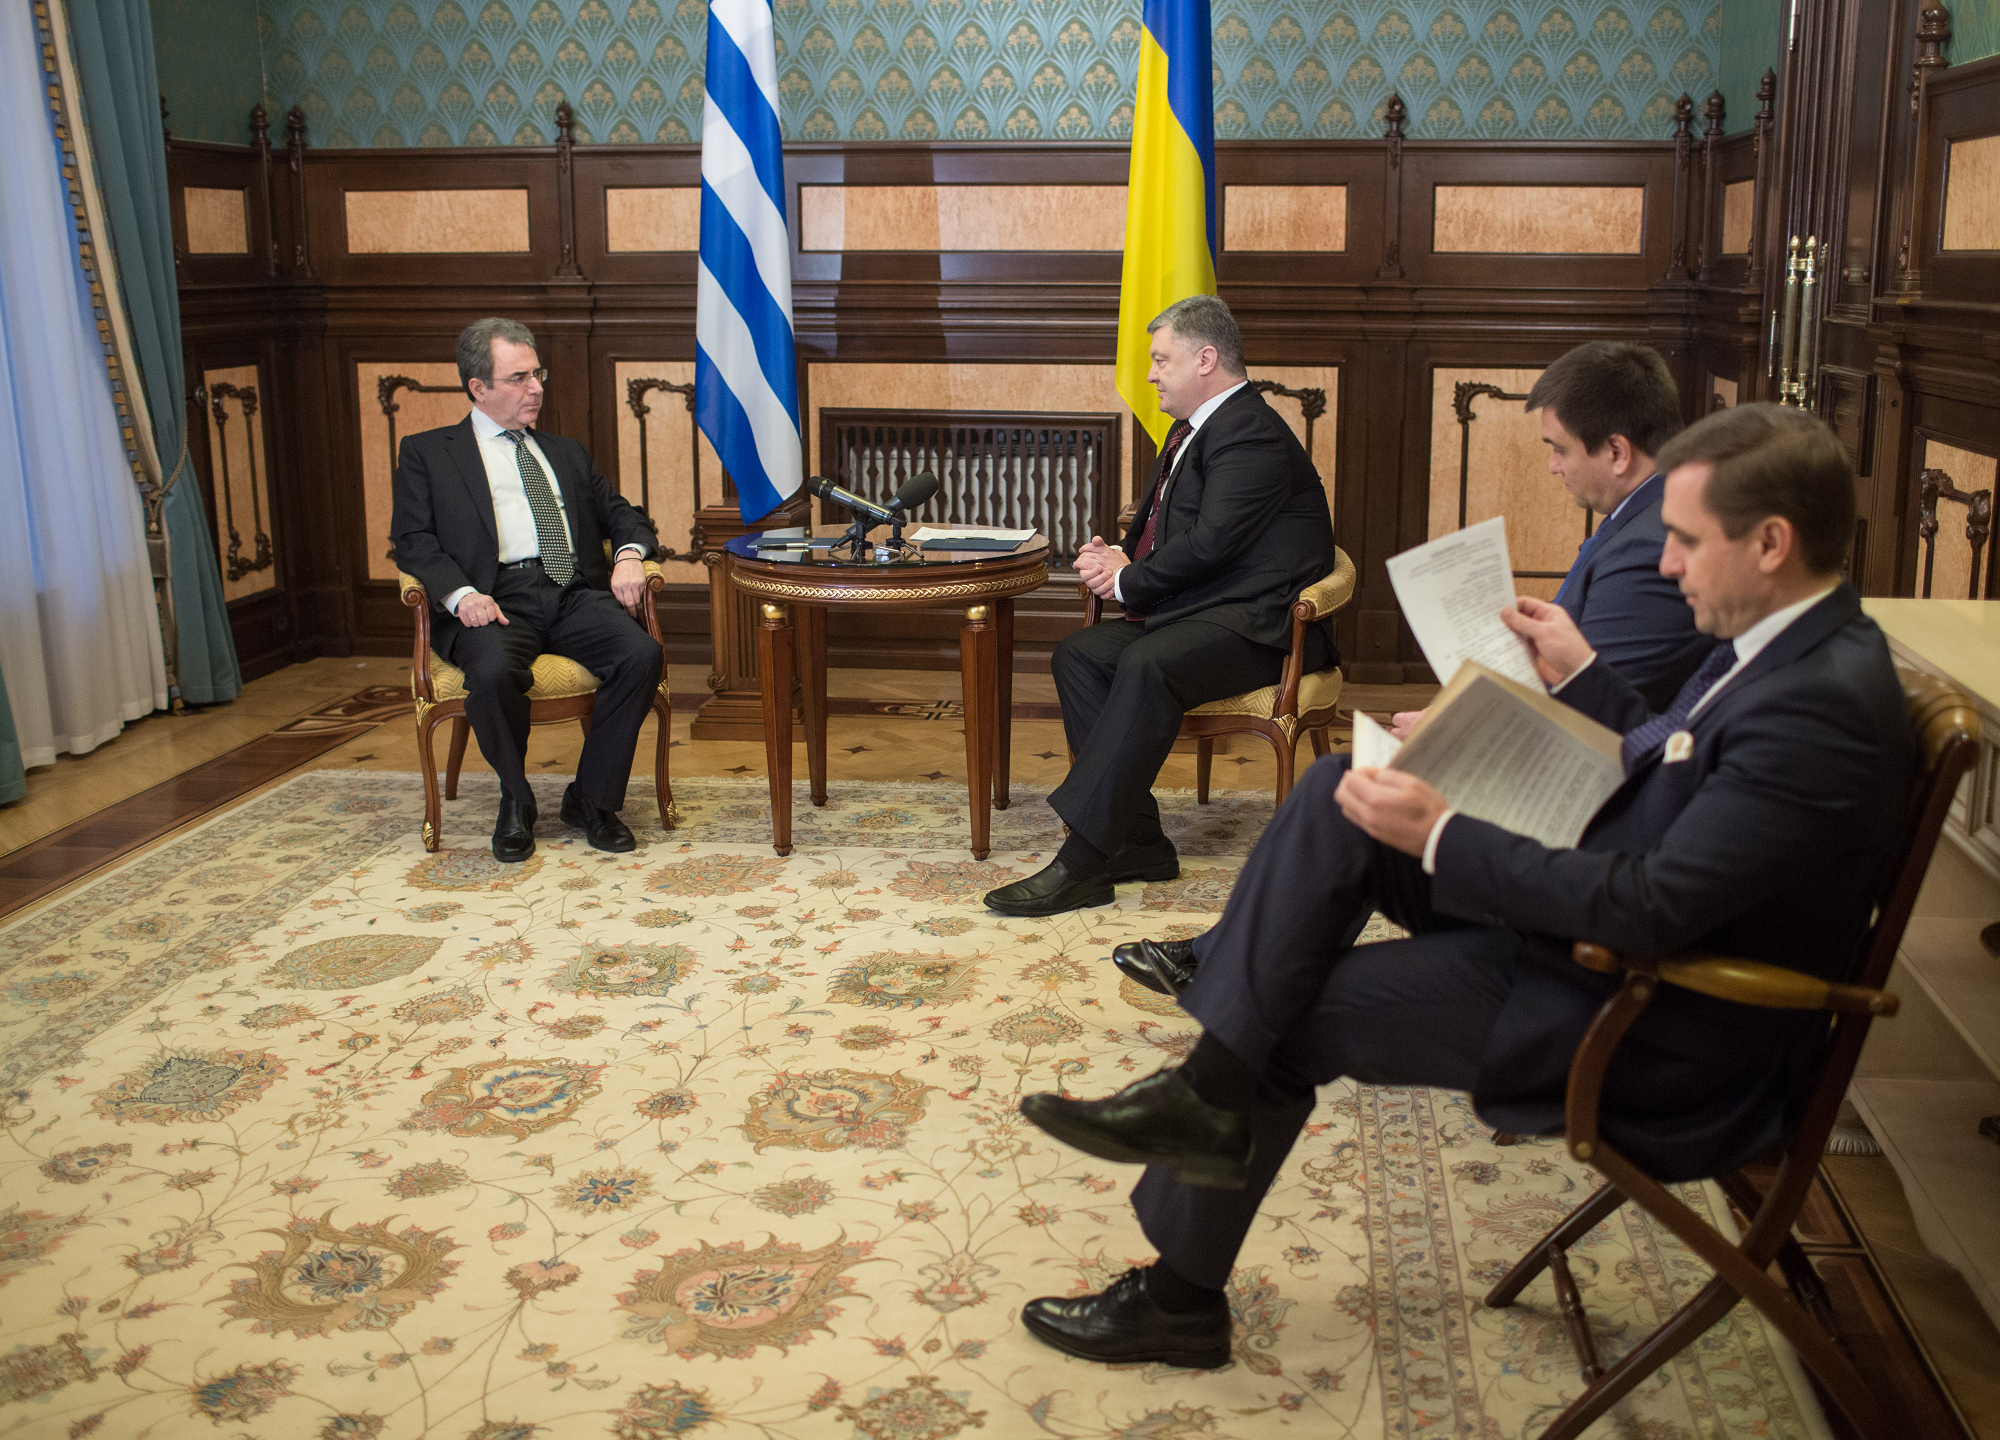 President of Ukraine Petro Poroshenko received credentials from Ambassador of Greece to Ukraine Georgios Poukamissas